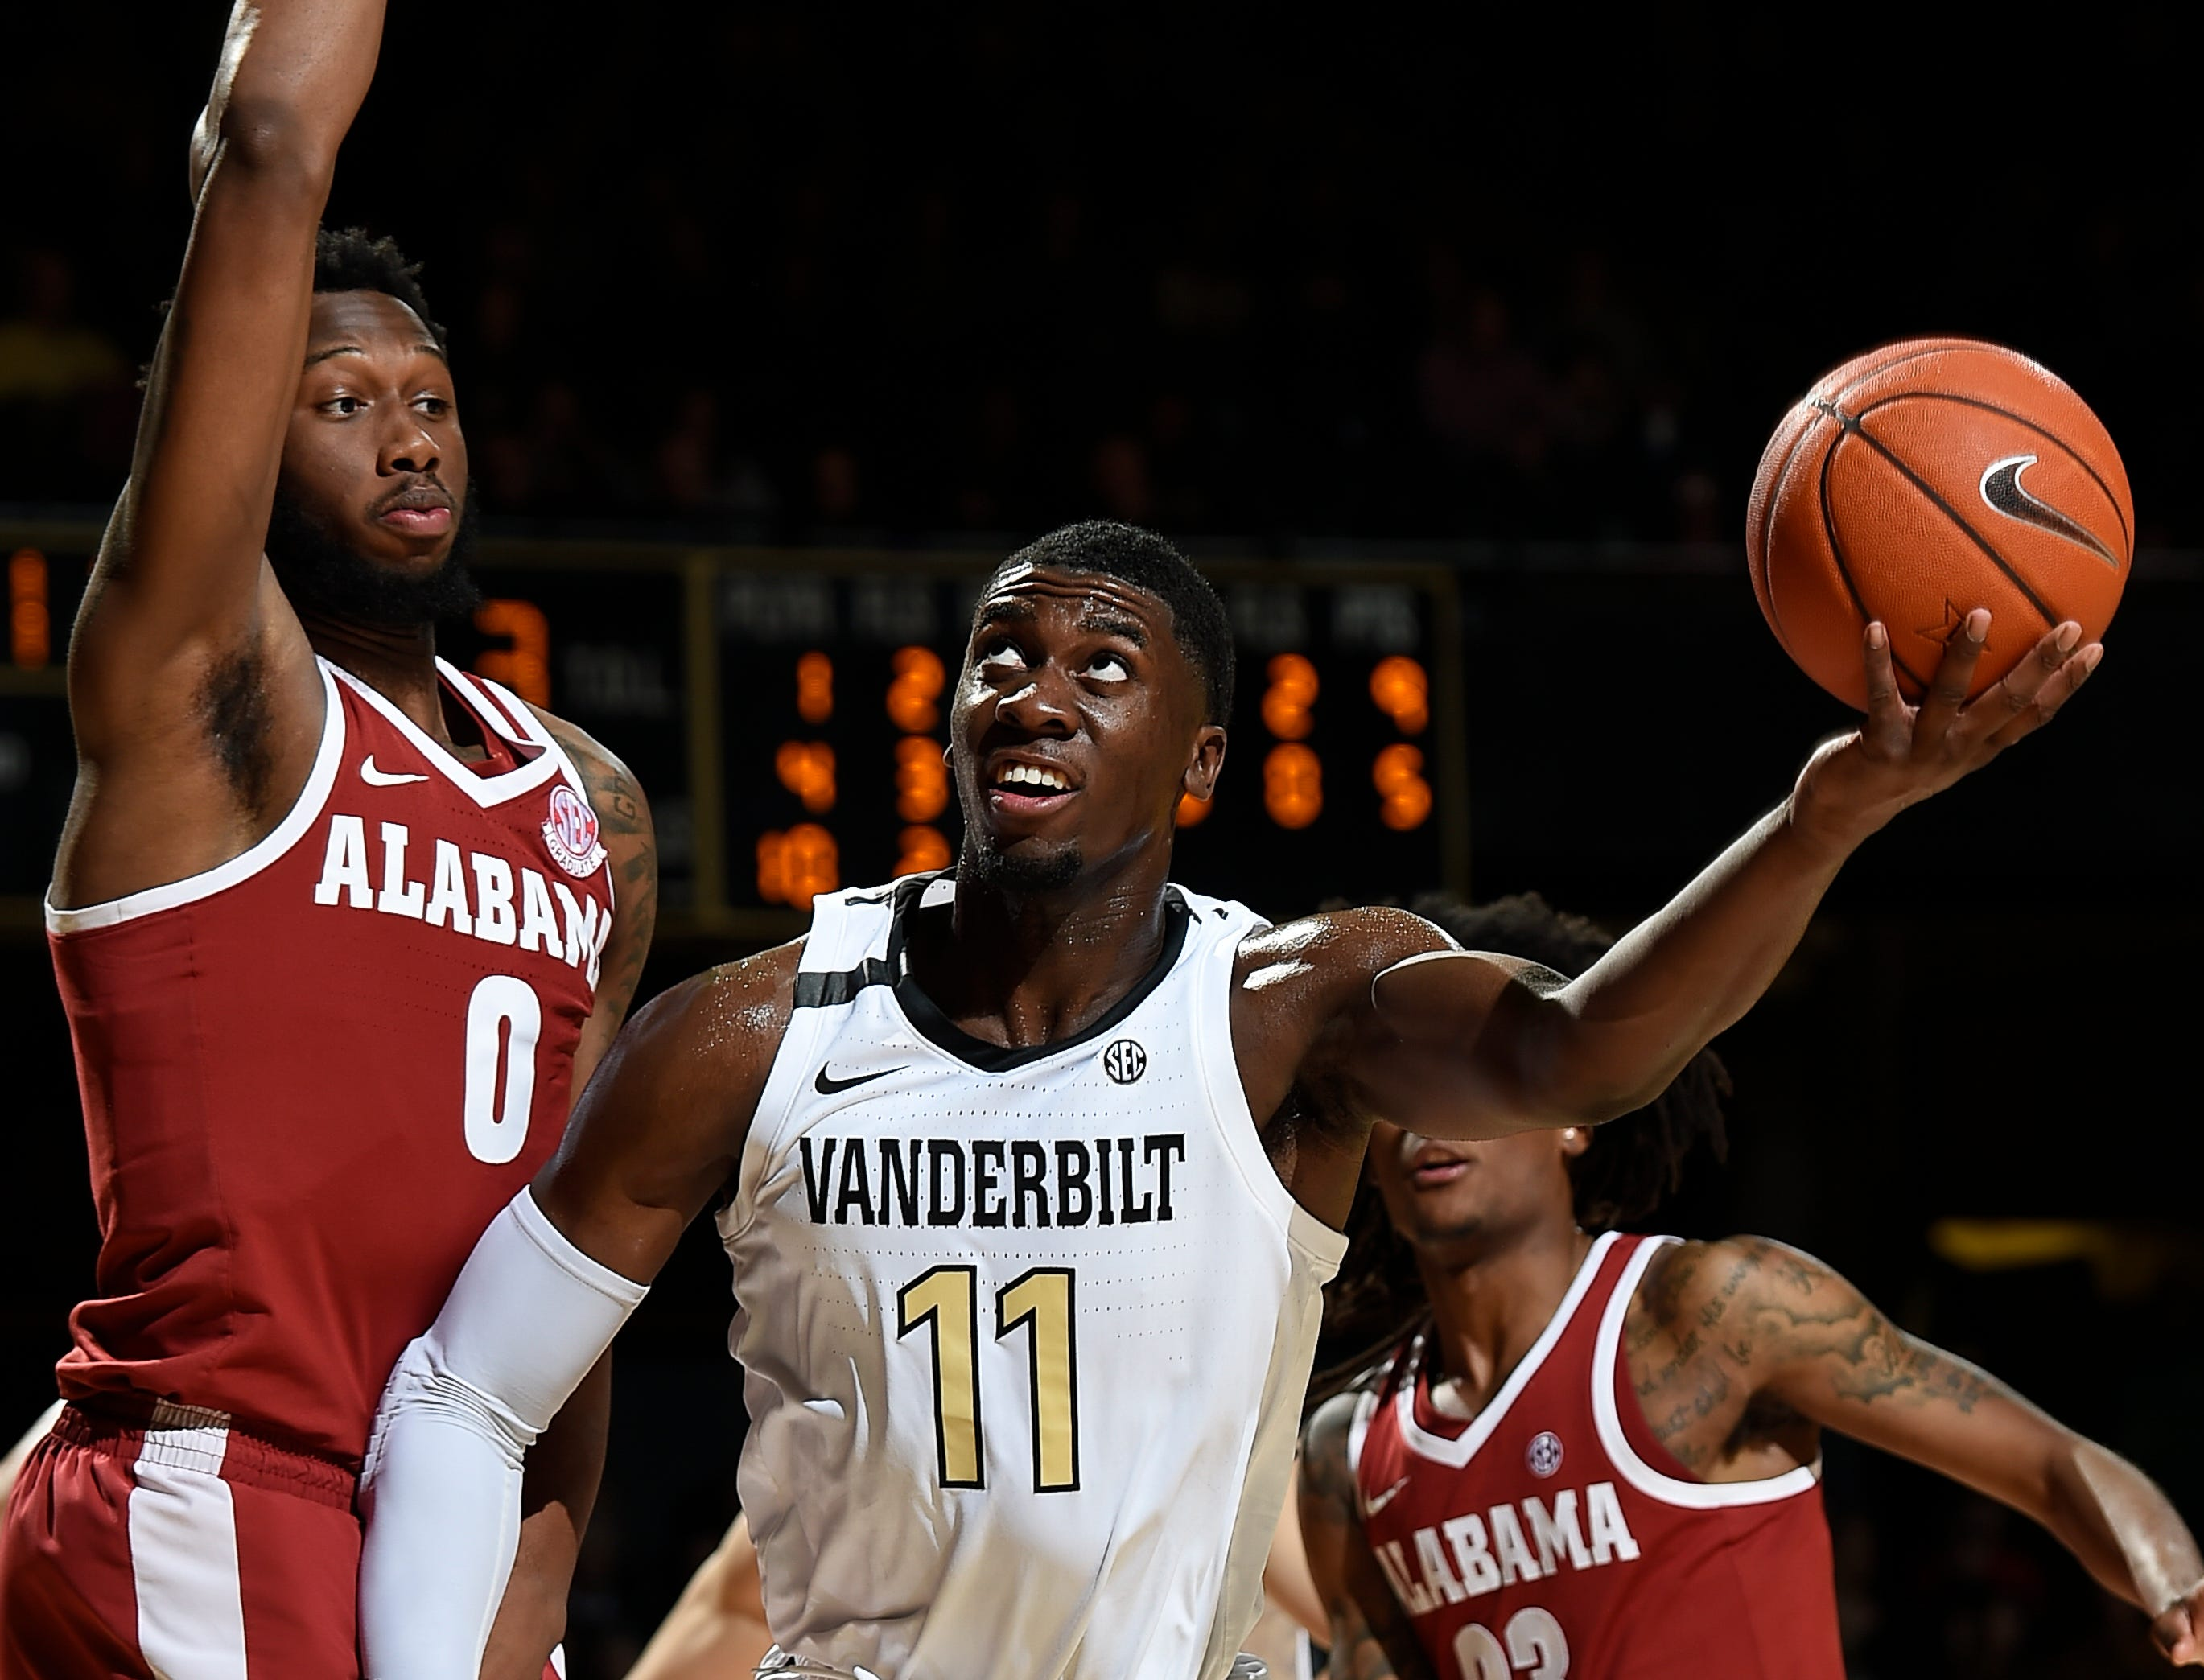 Vanderbilt forward Simisola Shittu (11) shoots past Alabama forward Donta Hall (0) during the second half at Memorial Gym Saturday Feb. 9, 2019 in Nashville, Tenn.